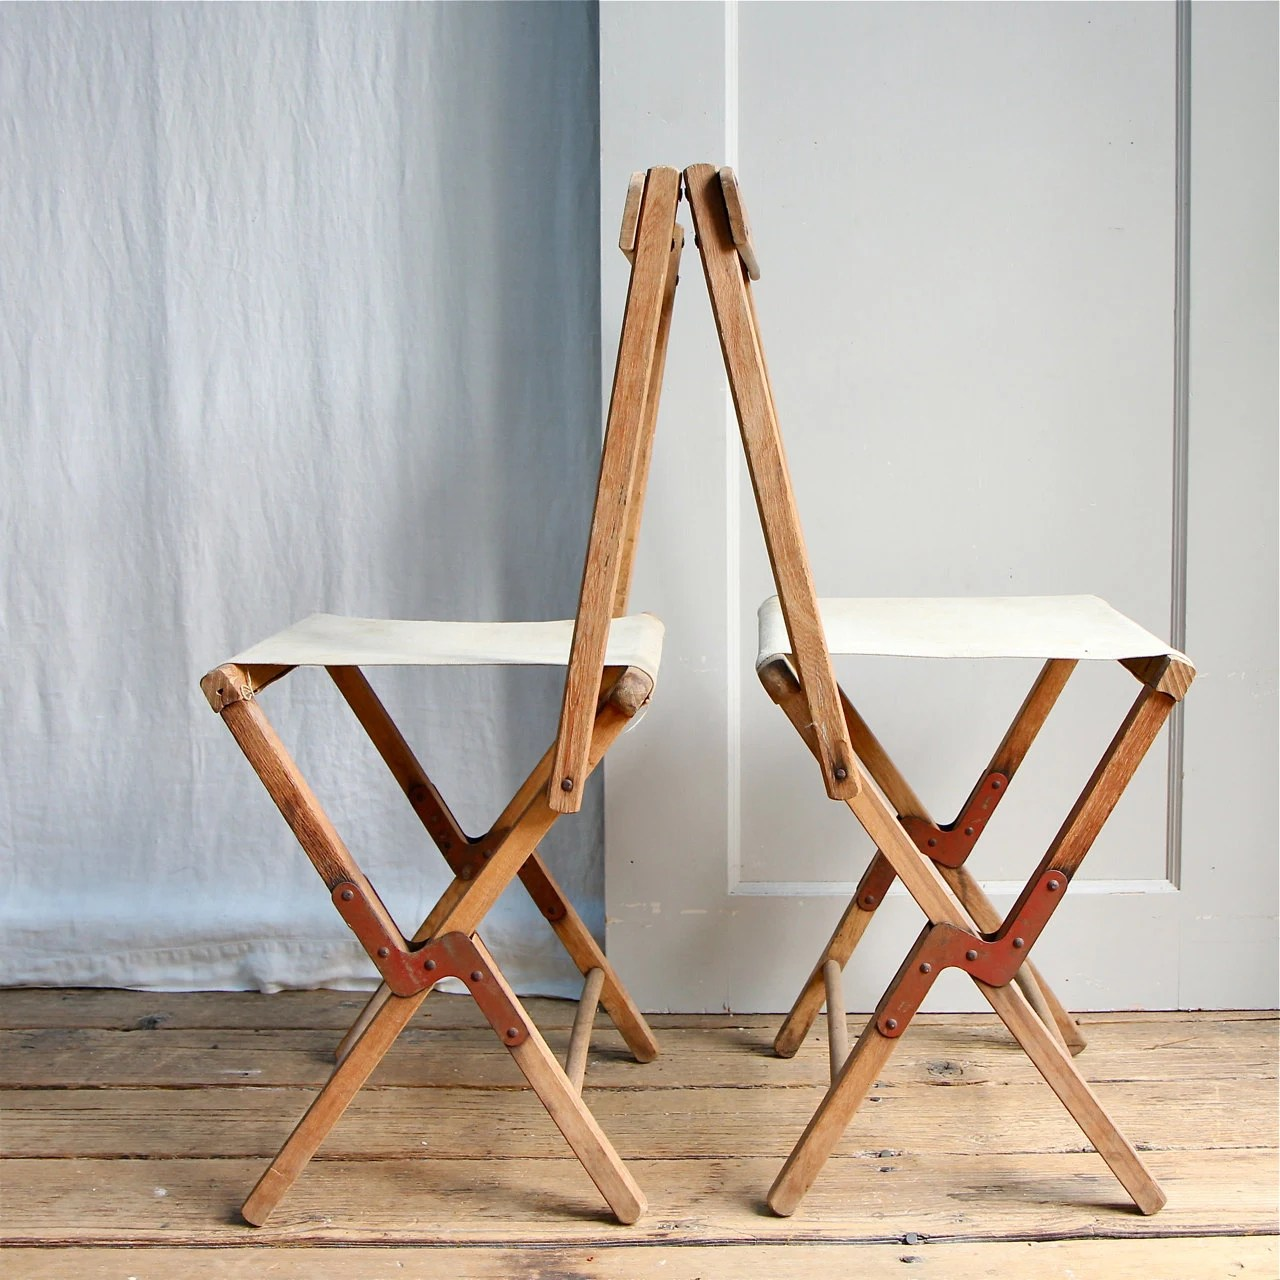 wood camp chair covers and sashes rental chicago vintage rustic folding stool canvas by ethanollie